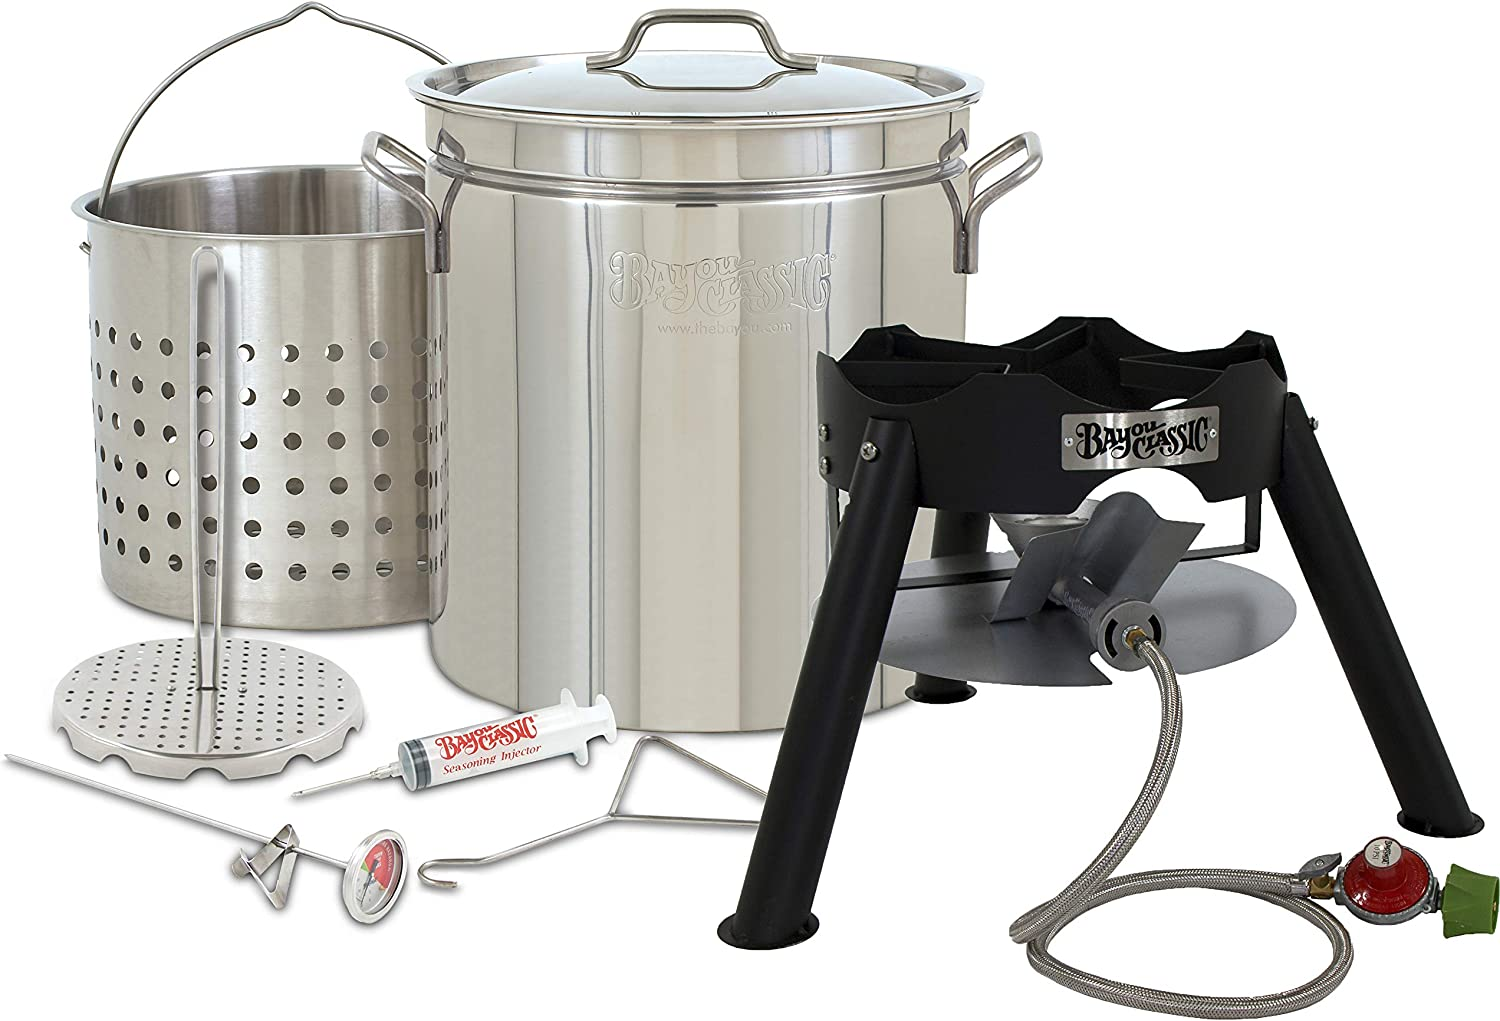 "Enterprises Complete Turkey Fryer Kit Oversized Big Big Stainless Stockpot w/Steel Burner Turkeys 25+ Pounds or Diameter of 13.5"" Low Profile Burner"